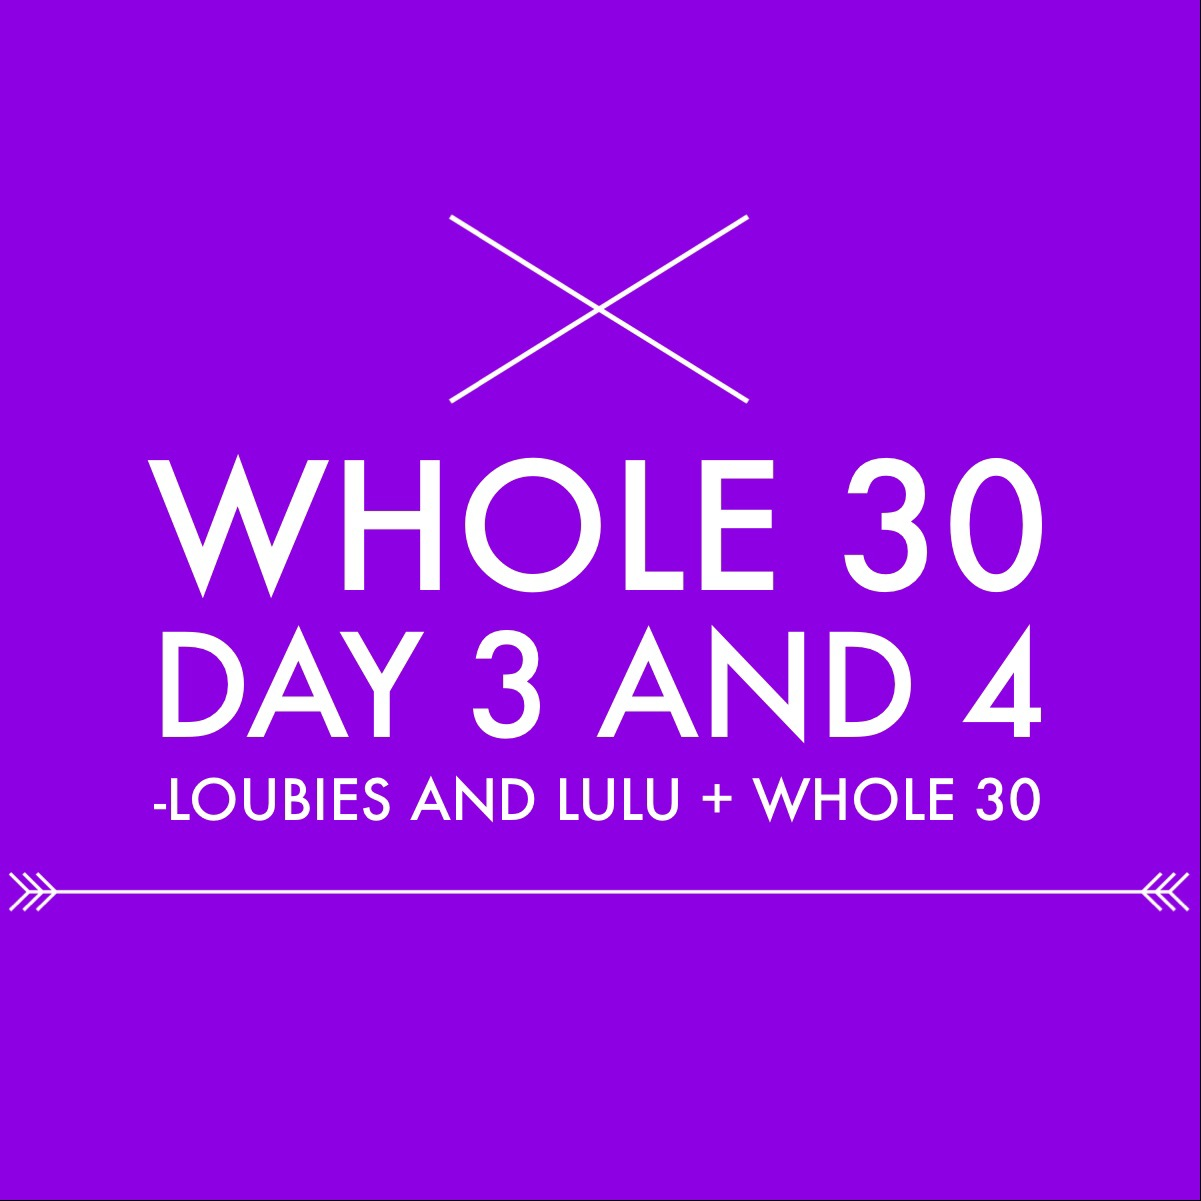 WHOLE 30:  DAY 3 & 4